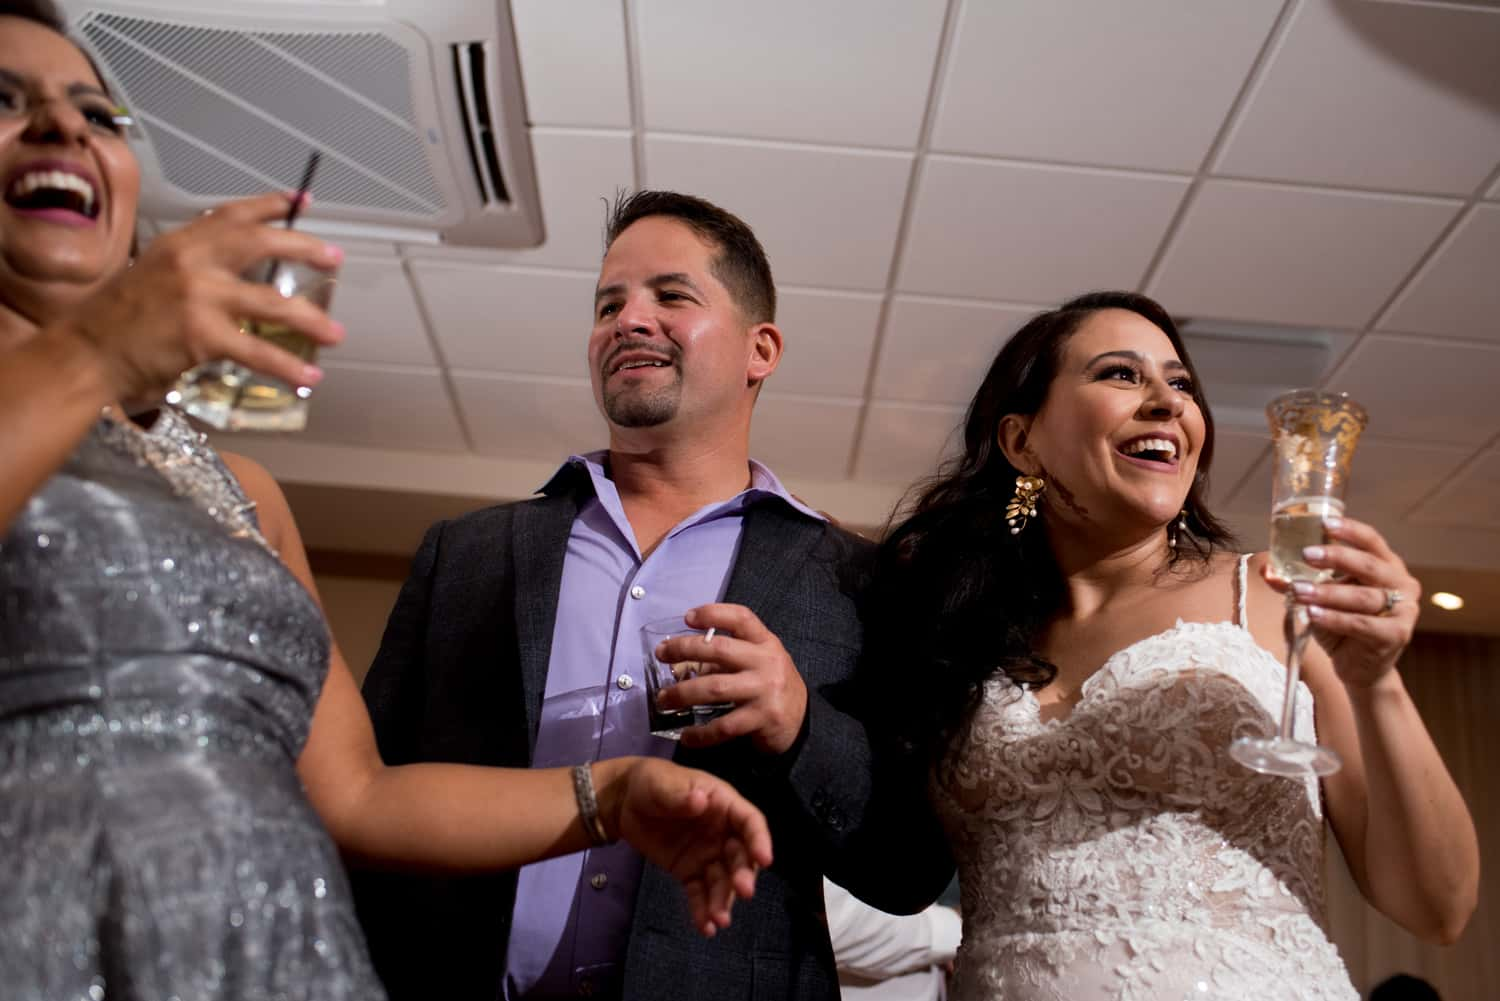 bride holding champagne glass smiling with guests during her wedding reception